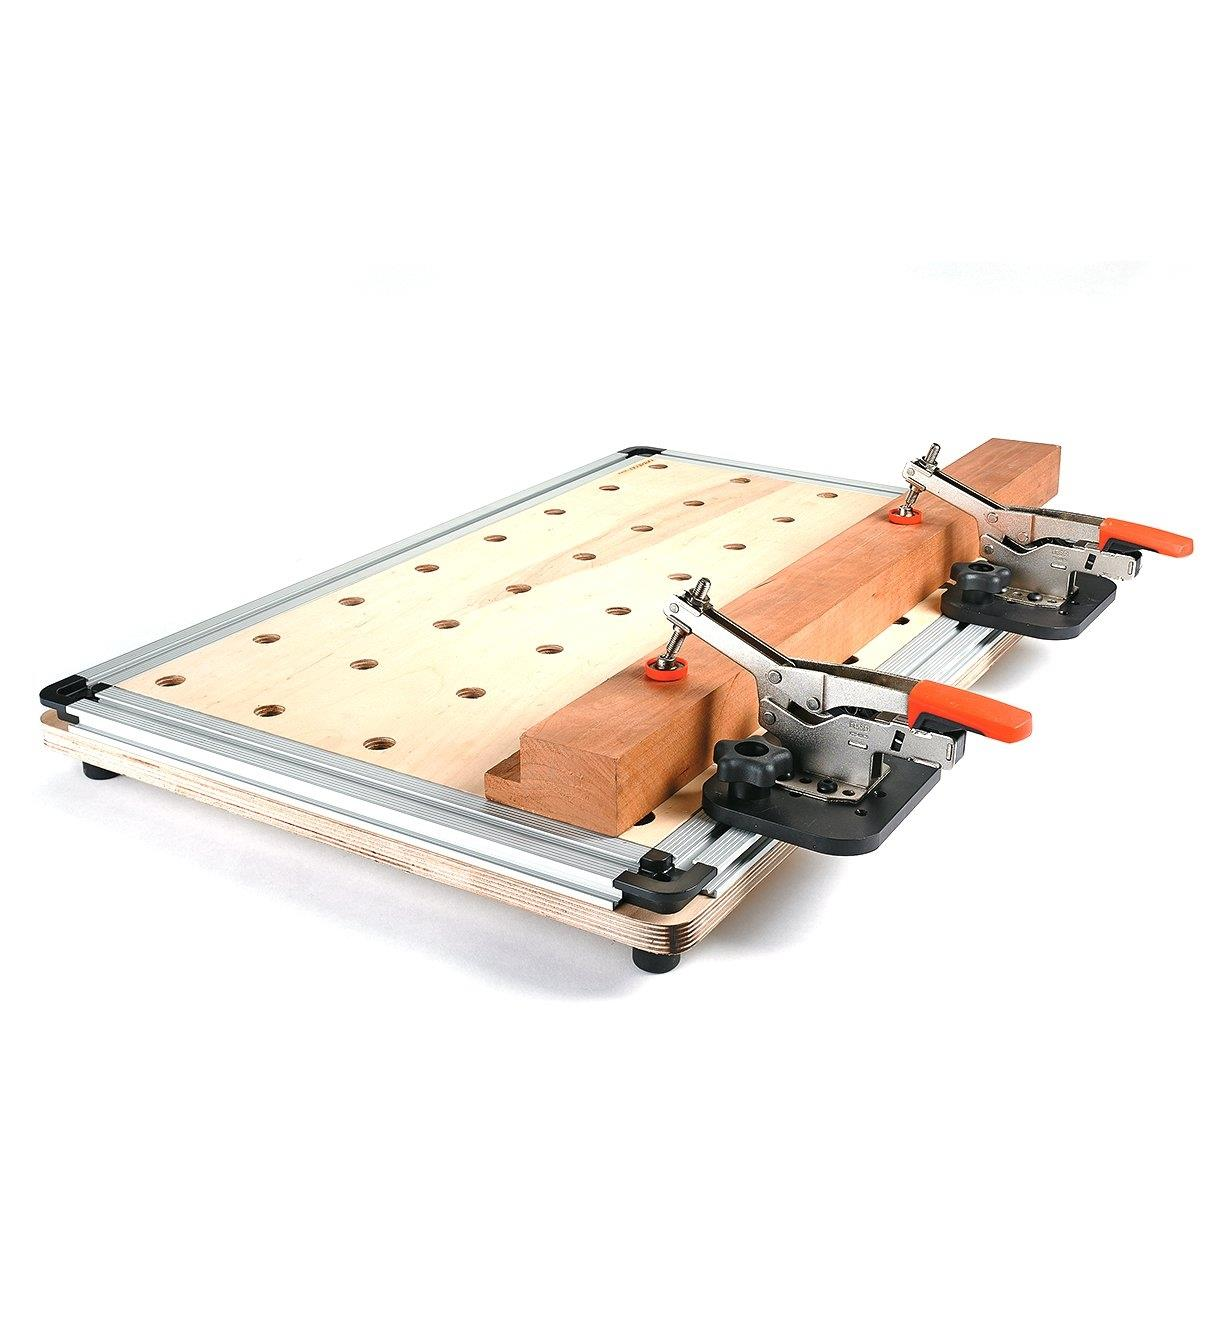 Quad t-slot track mounted to a custom work surface with wood held on the top by two toggle clamps